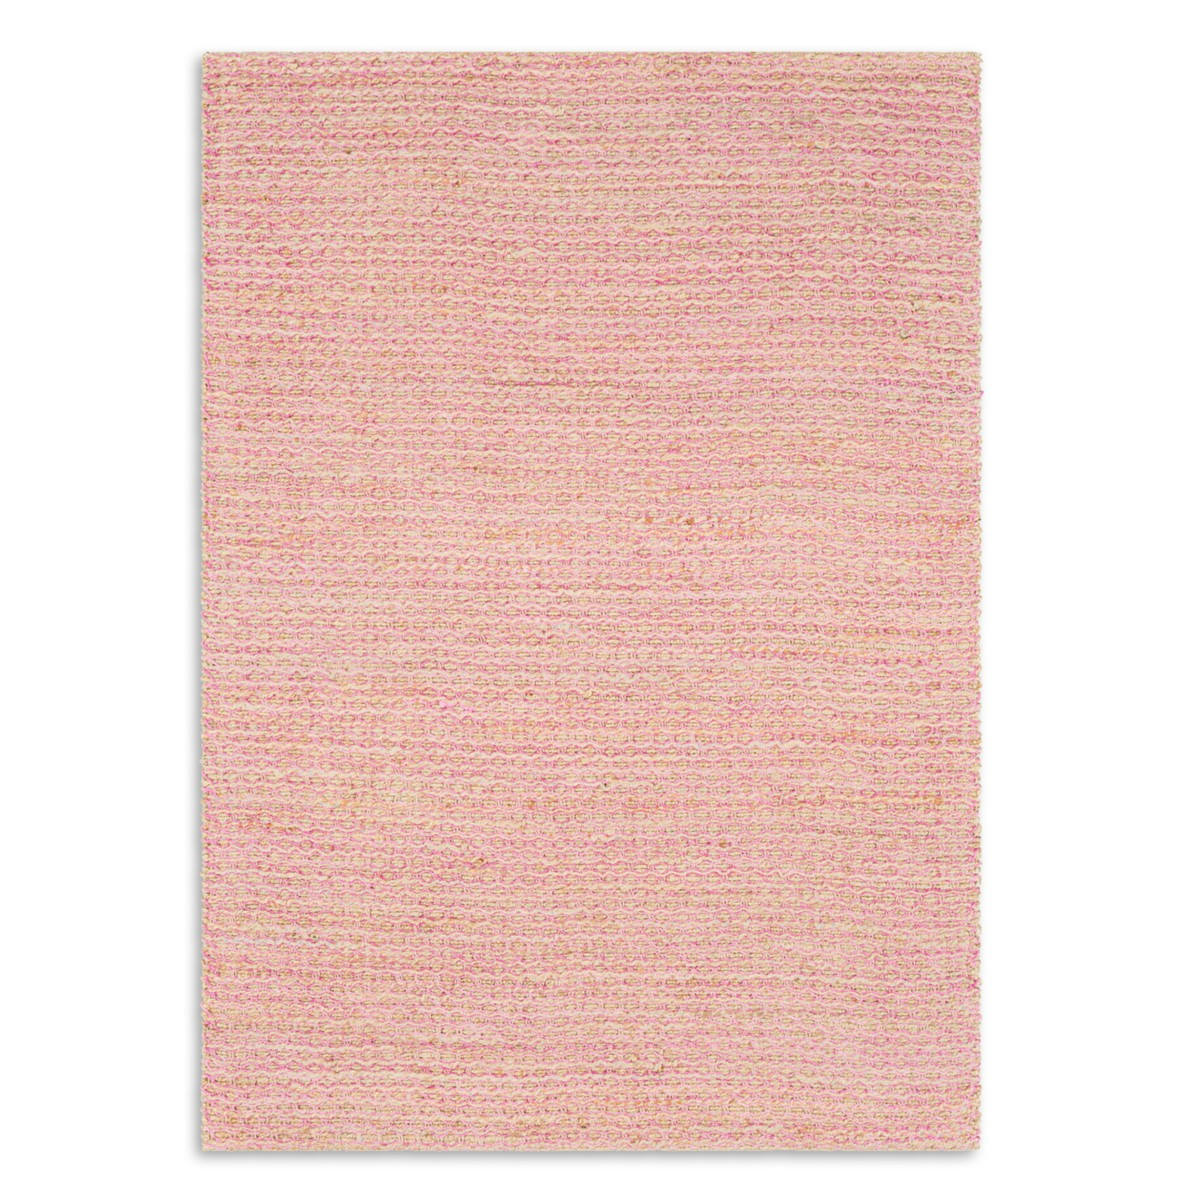 Ripple Woven Rug - Pink